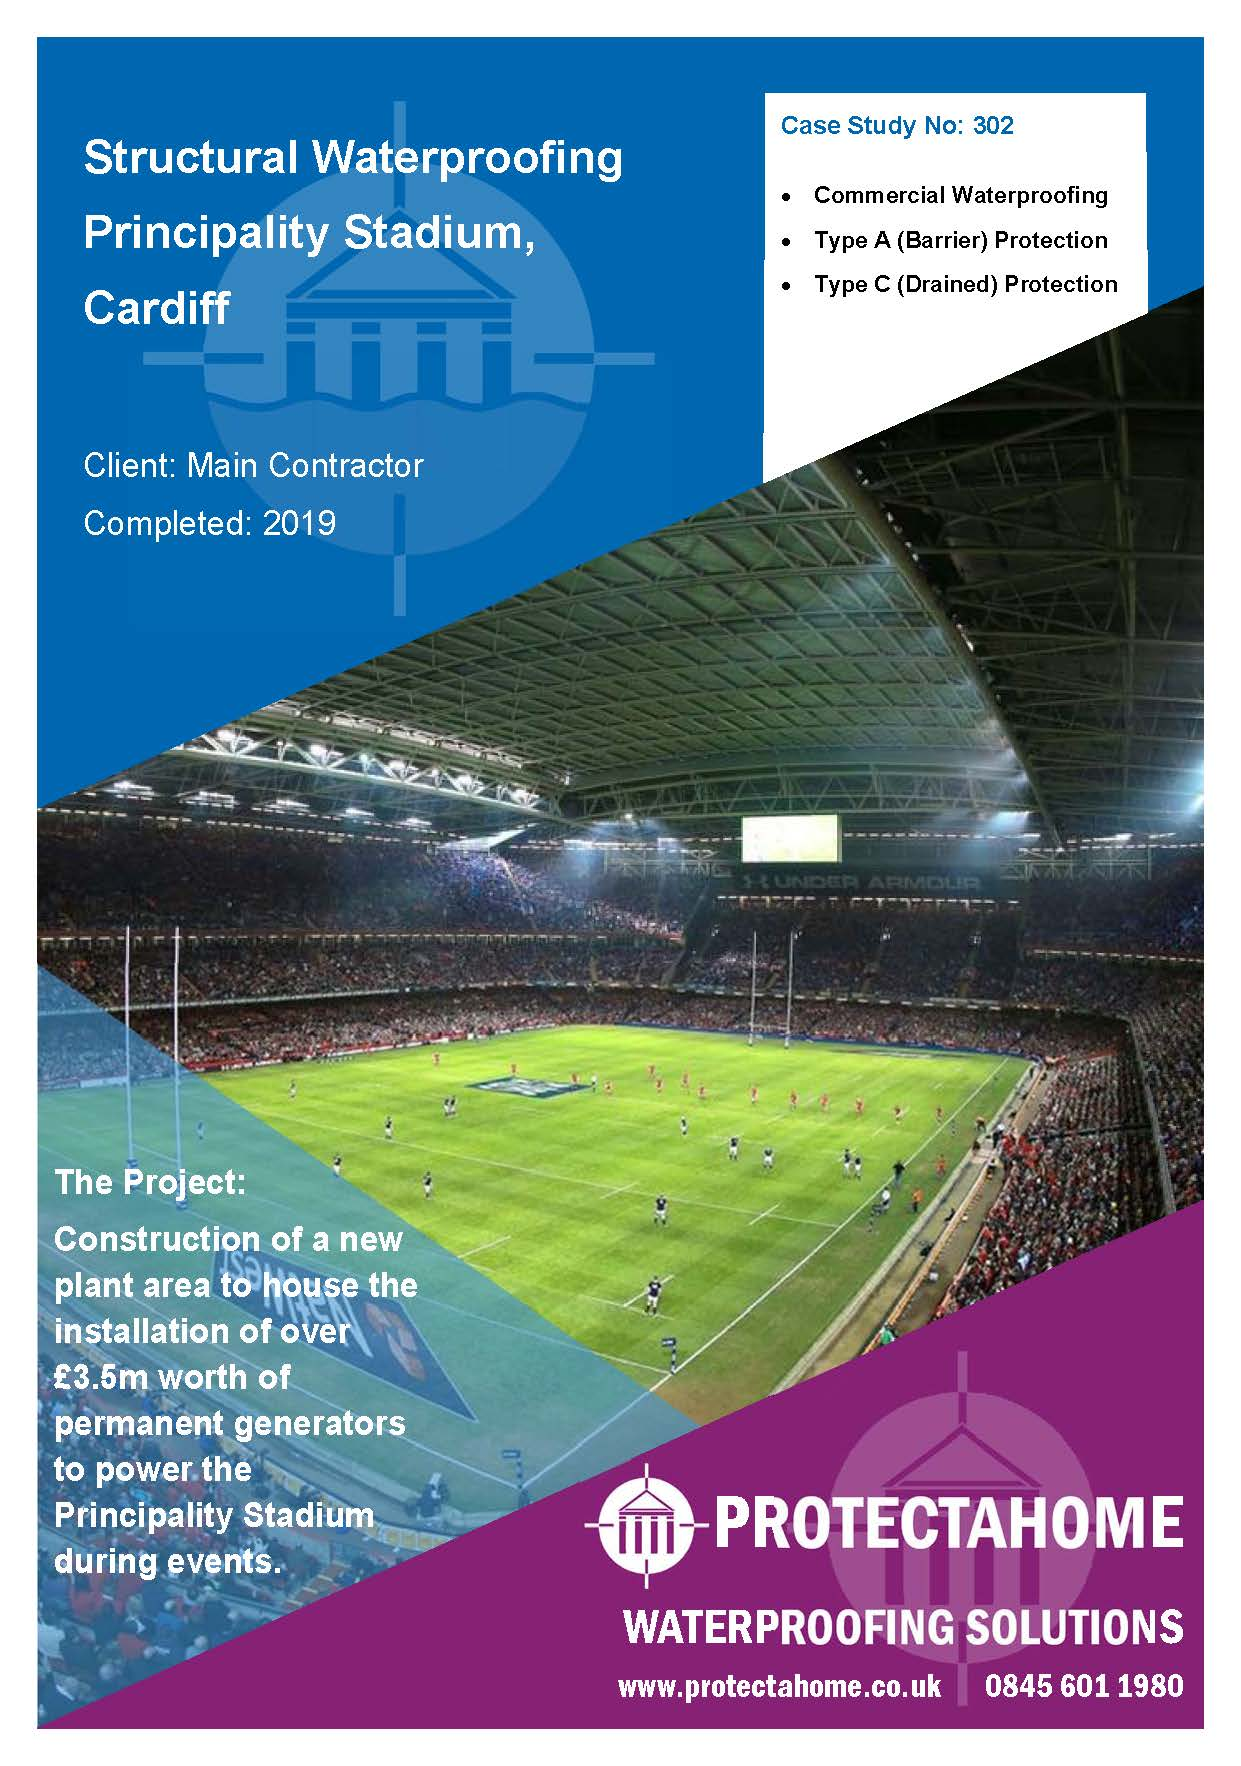 Structural Waterproofing, Principality Stadium, Cardiff